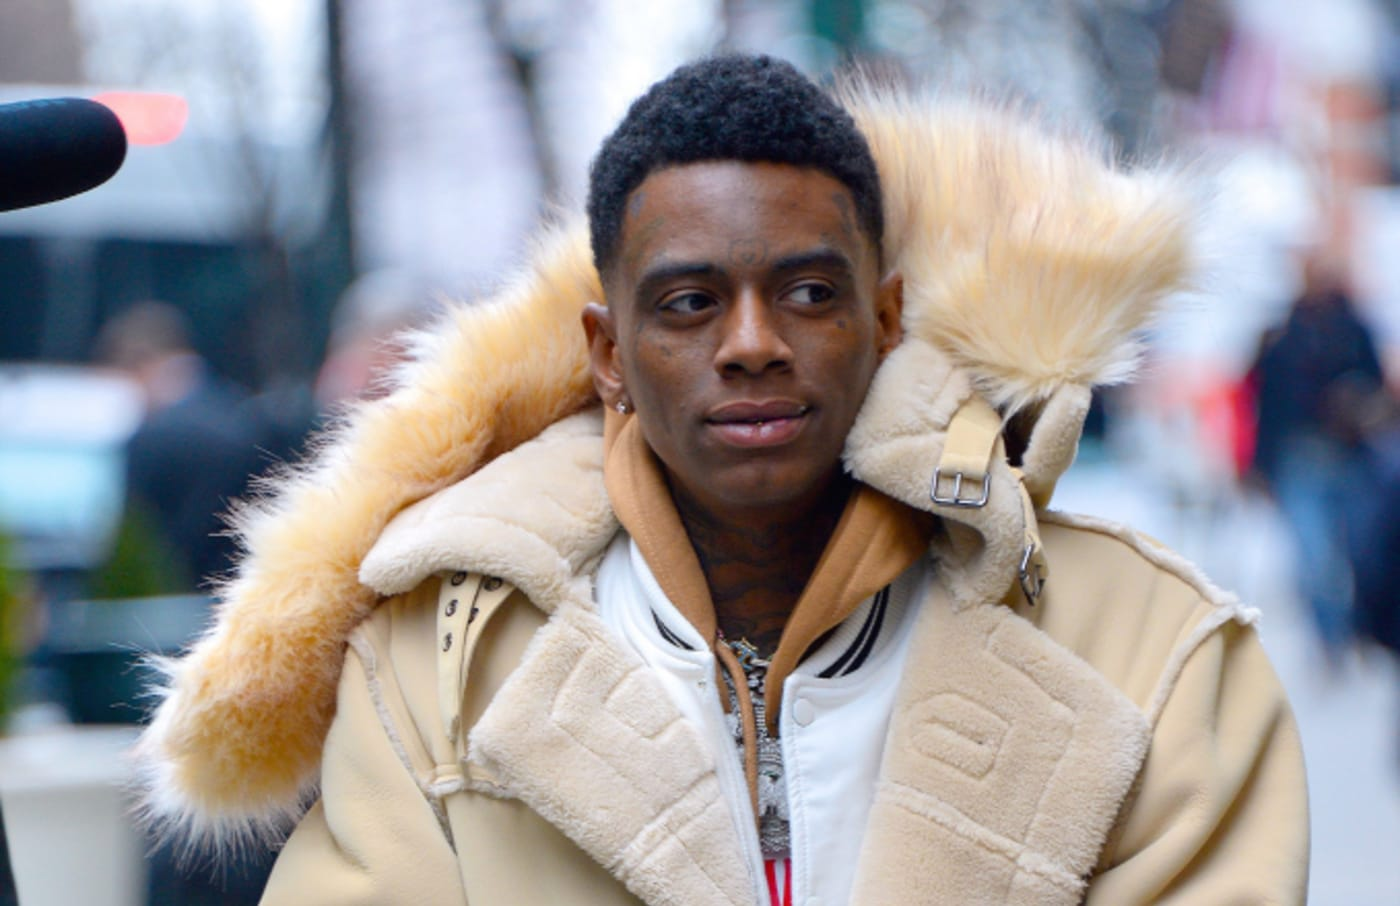 Soulja Boy seen out and about in Manhattan on January 16, 2019